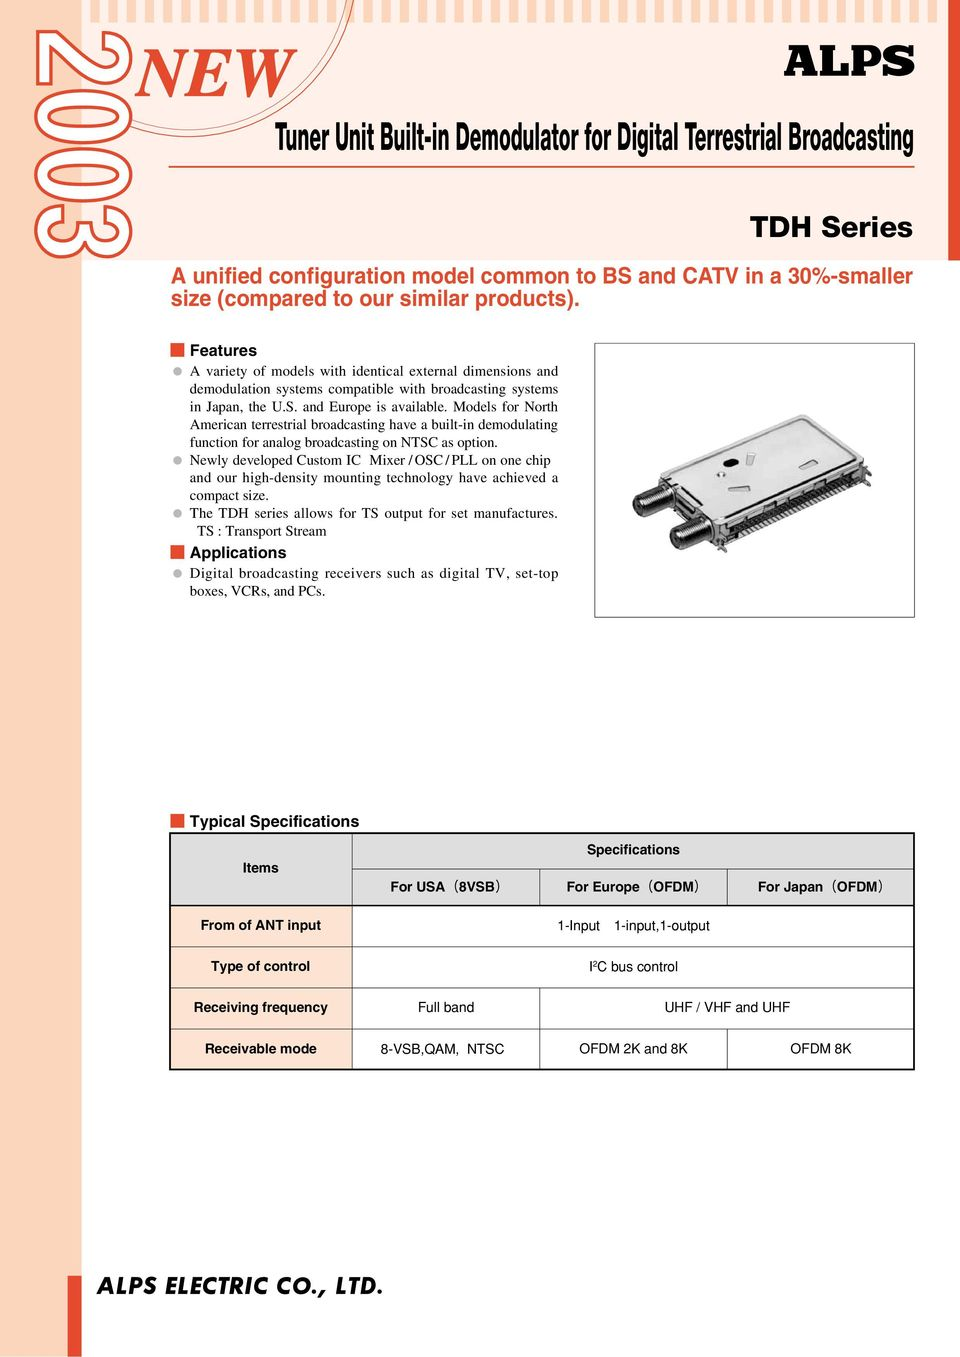 Vvc Tuner Introduction Feature Application Pdf Block Diagram Of An Analogue Uhf Tv Receiver Models For North American Terrestrial Broadcasting Have A Built In Demodulating Function Analog